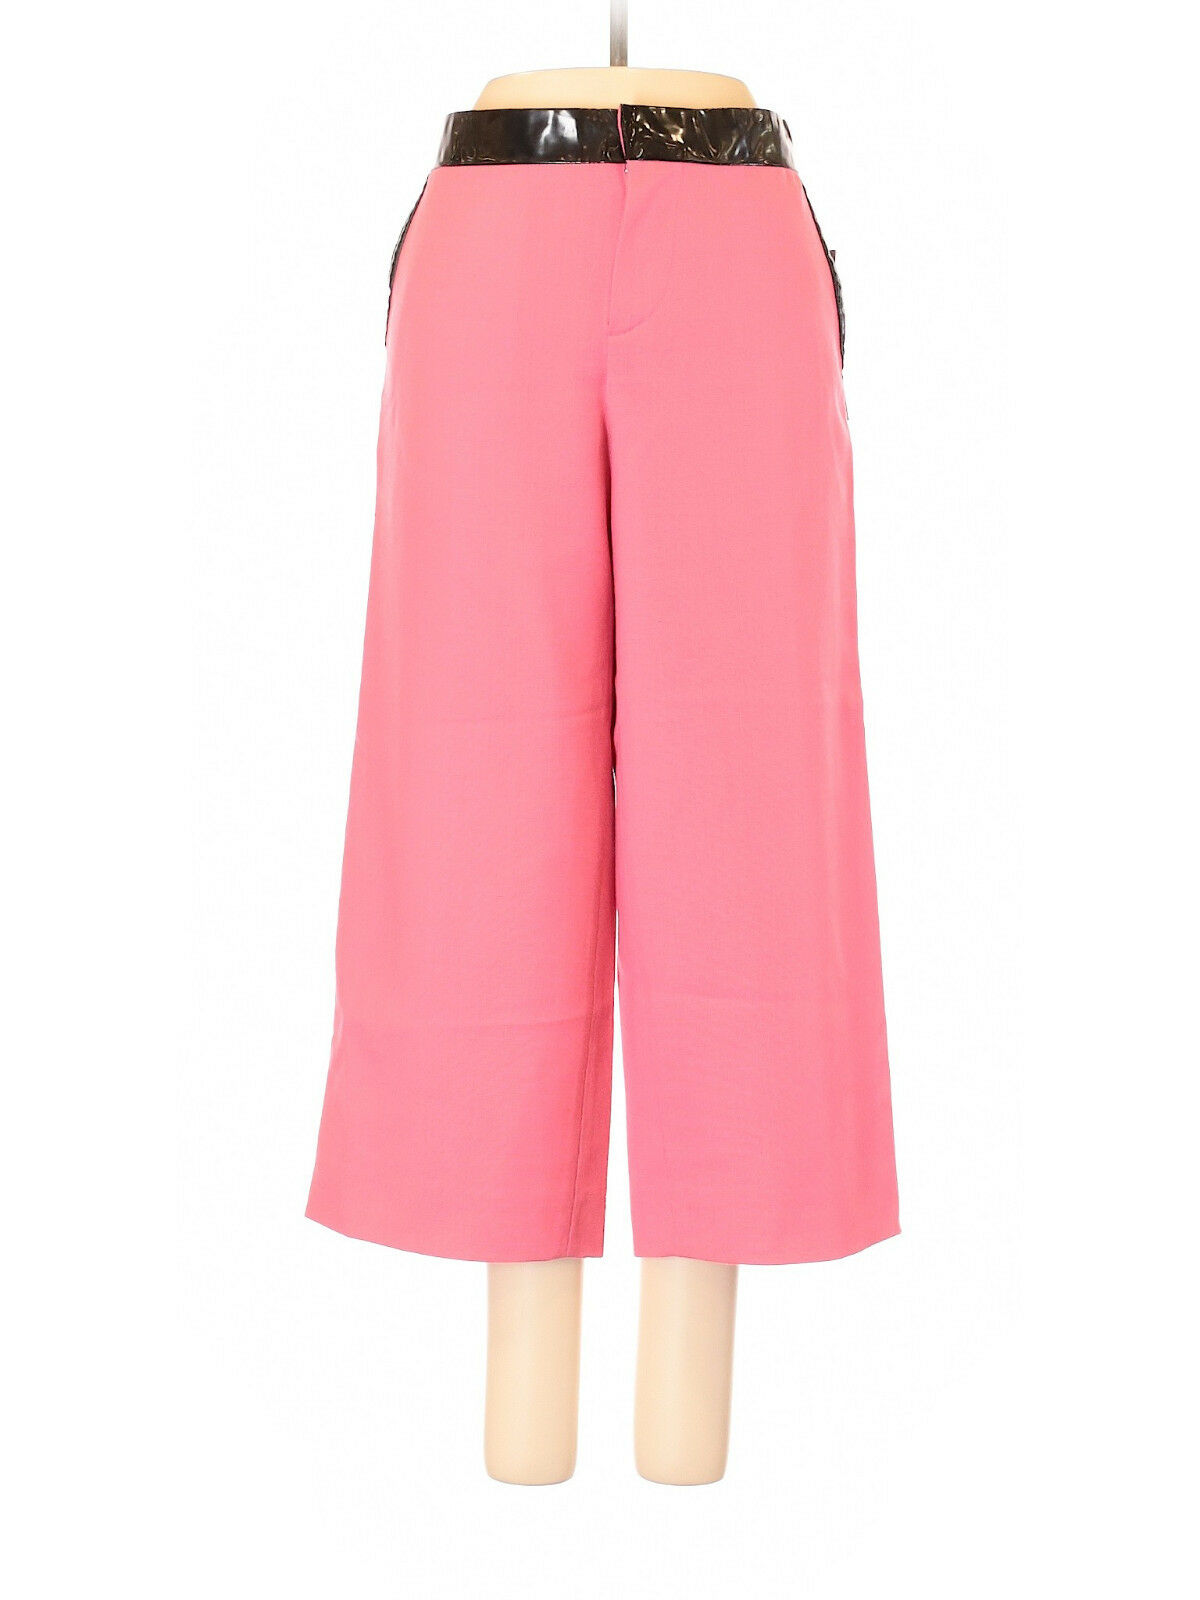 Marc Jacobs Pink Wide Leg Cropped Wool Pants, Size 8, NWT  Retail  228